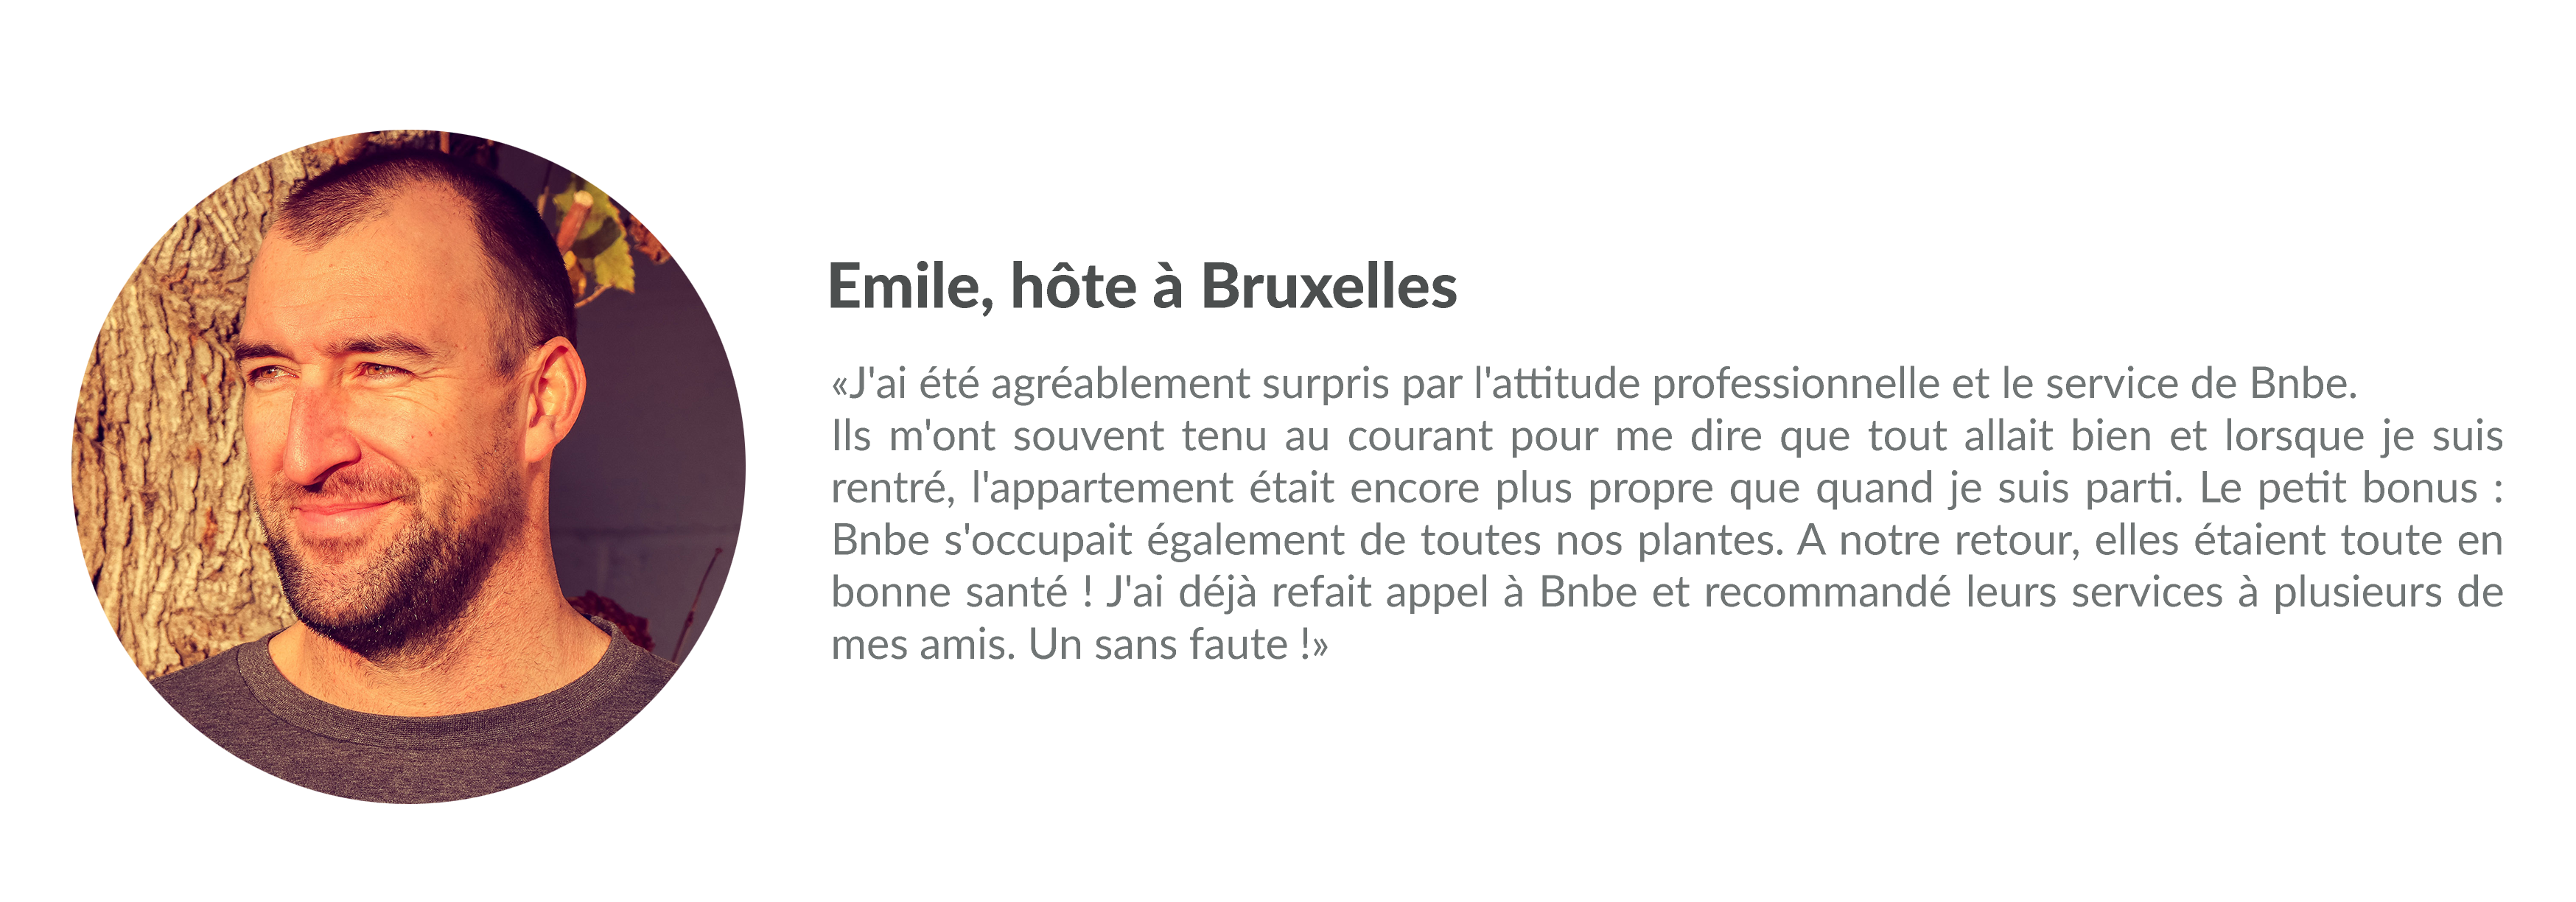 Commentaire-Emile-Bnbe.3